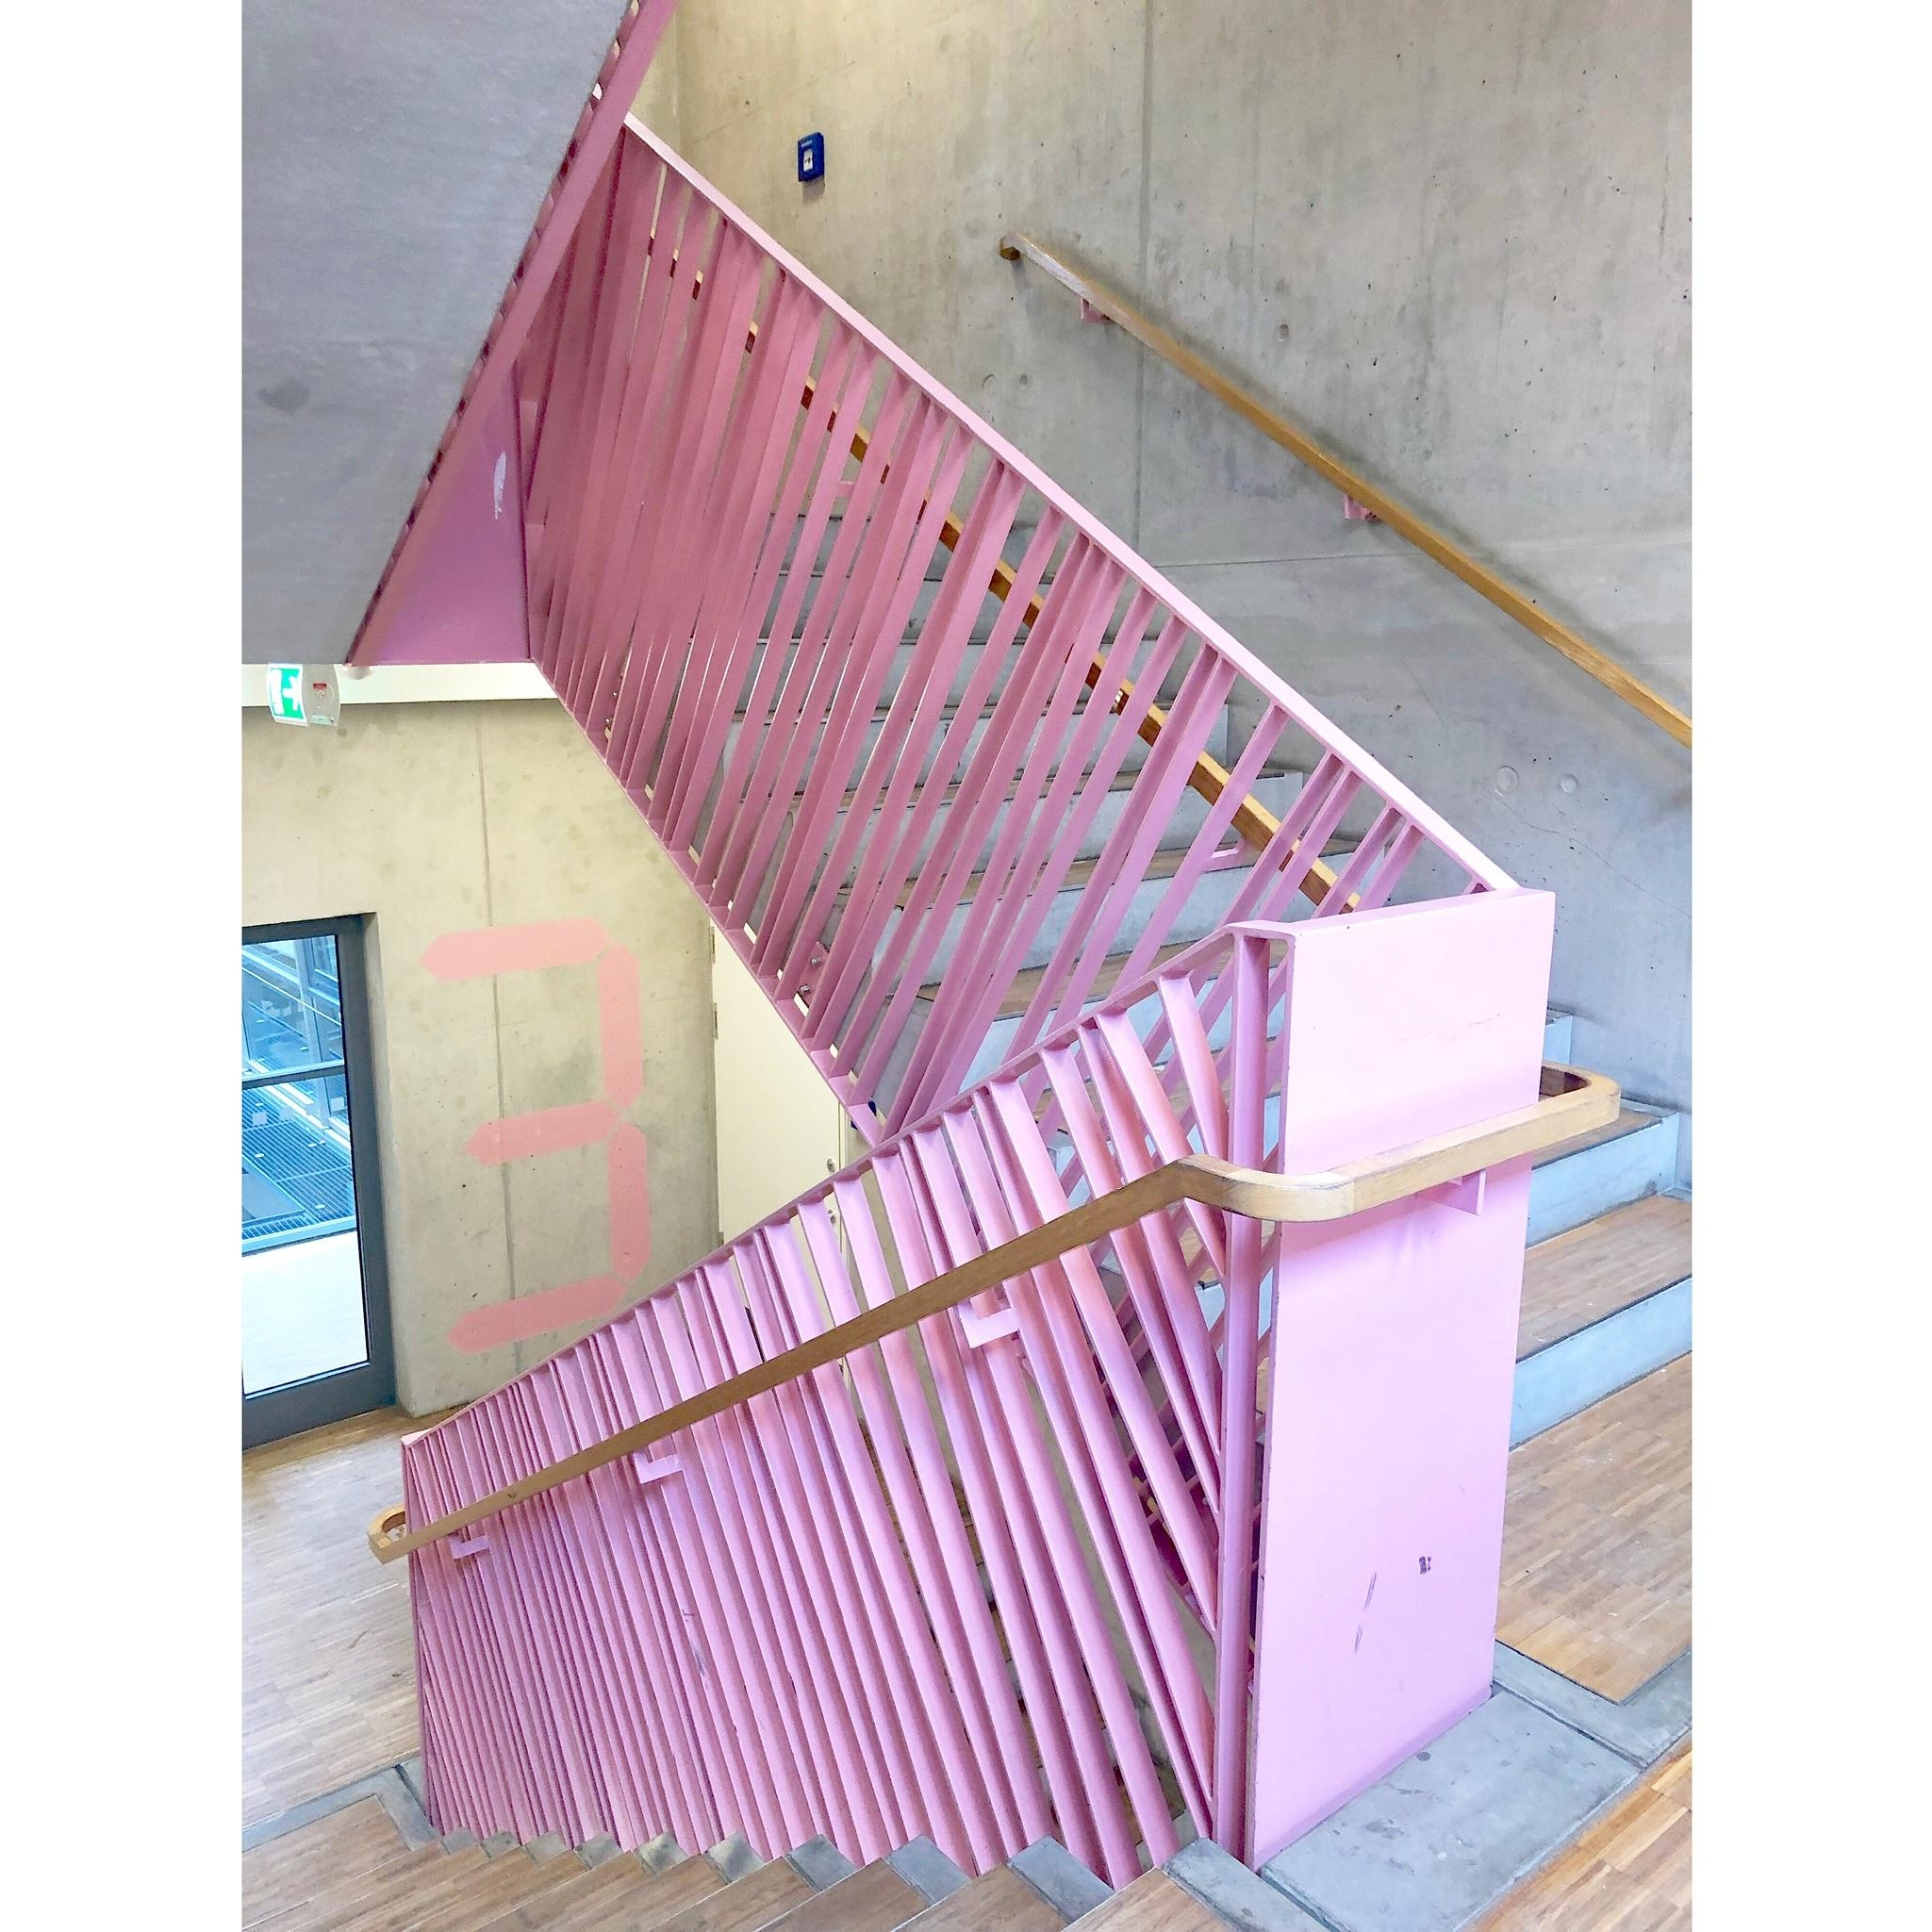 Die coolste schule ever   mama industrial beton pink hamburg hafencity  543dfd08 8cbd 4adc 9be7 1420d3bc14c4